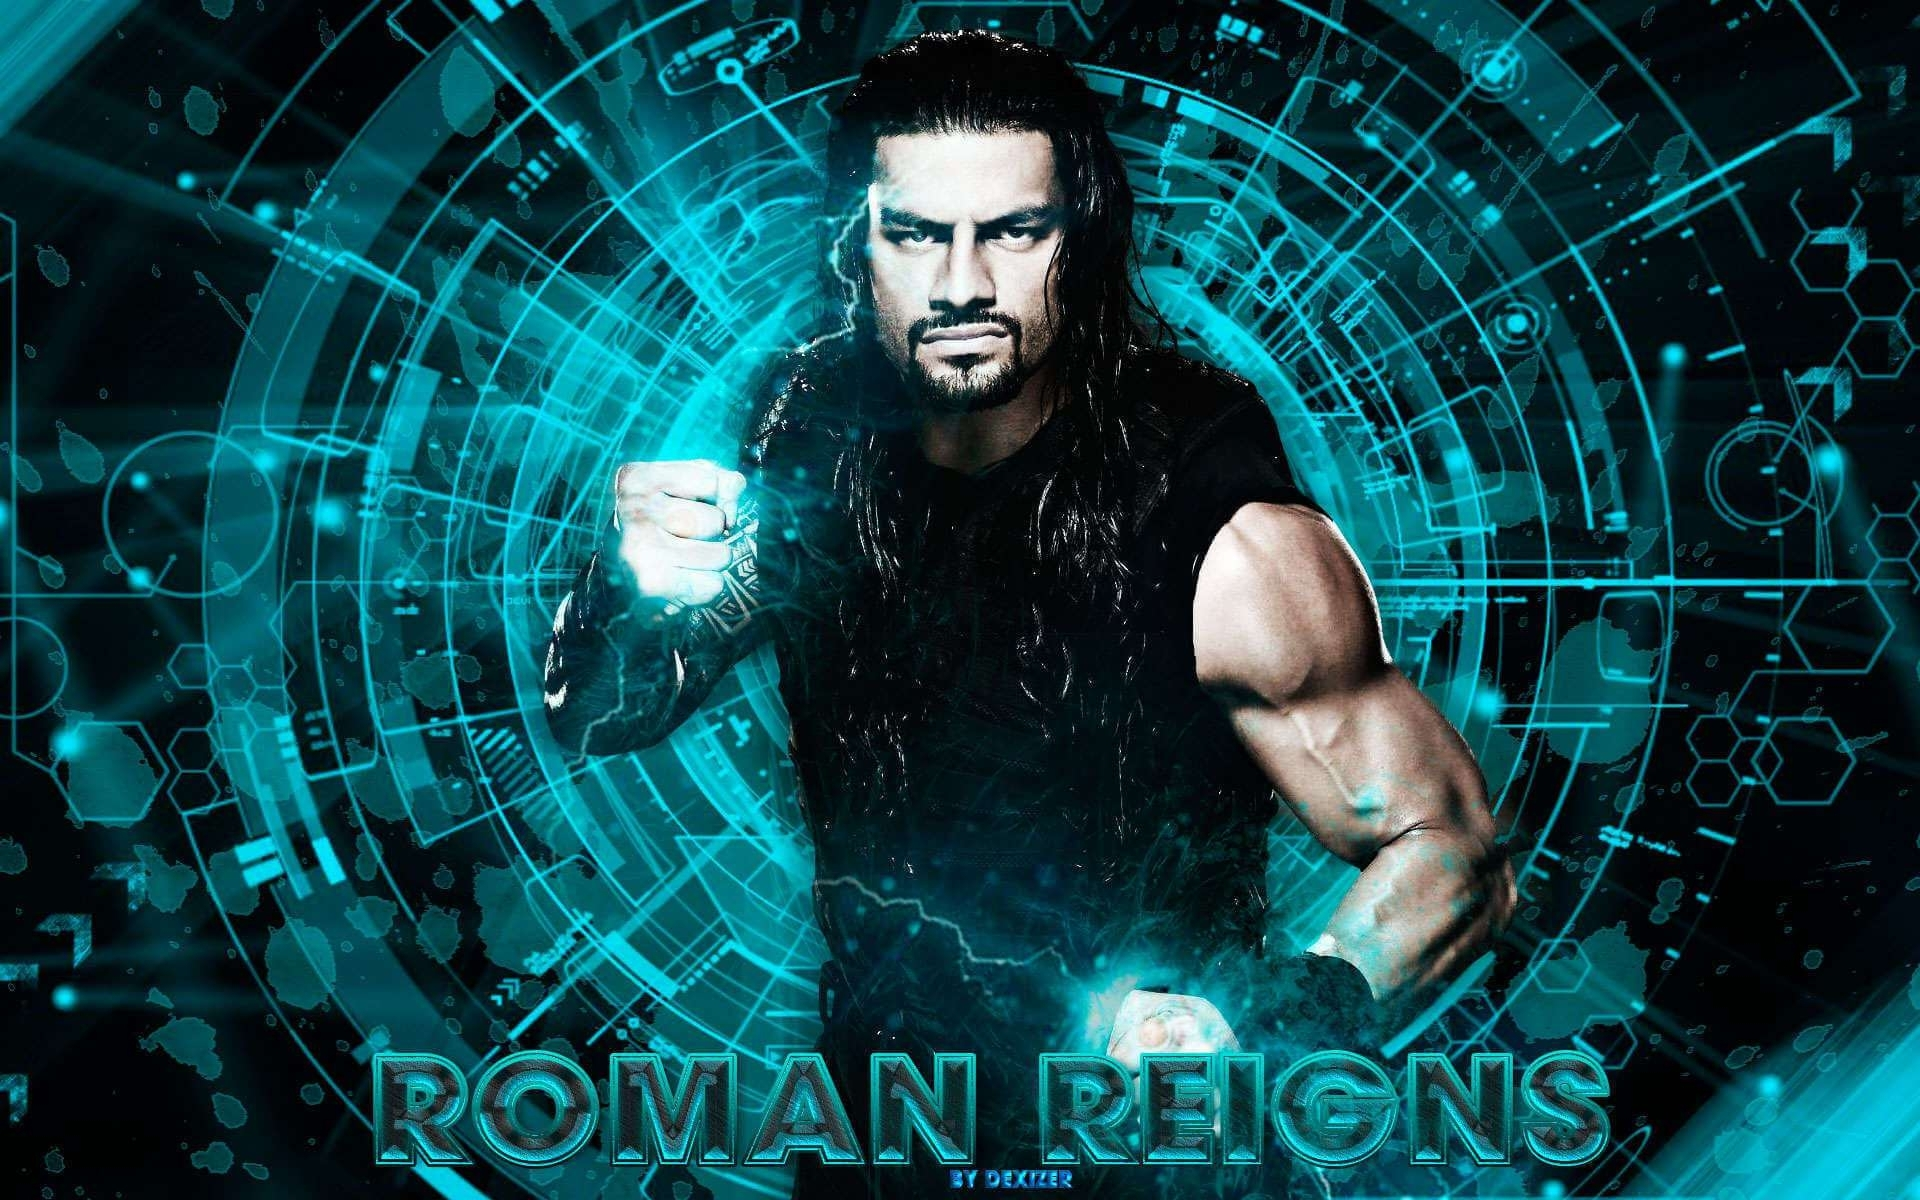 best 64 wwe superstar roman reigns hd wallpapers & latest images